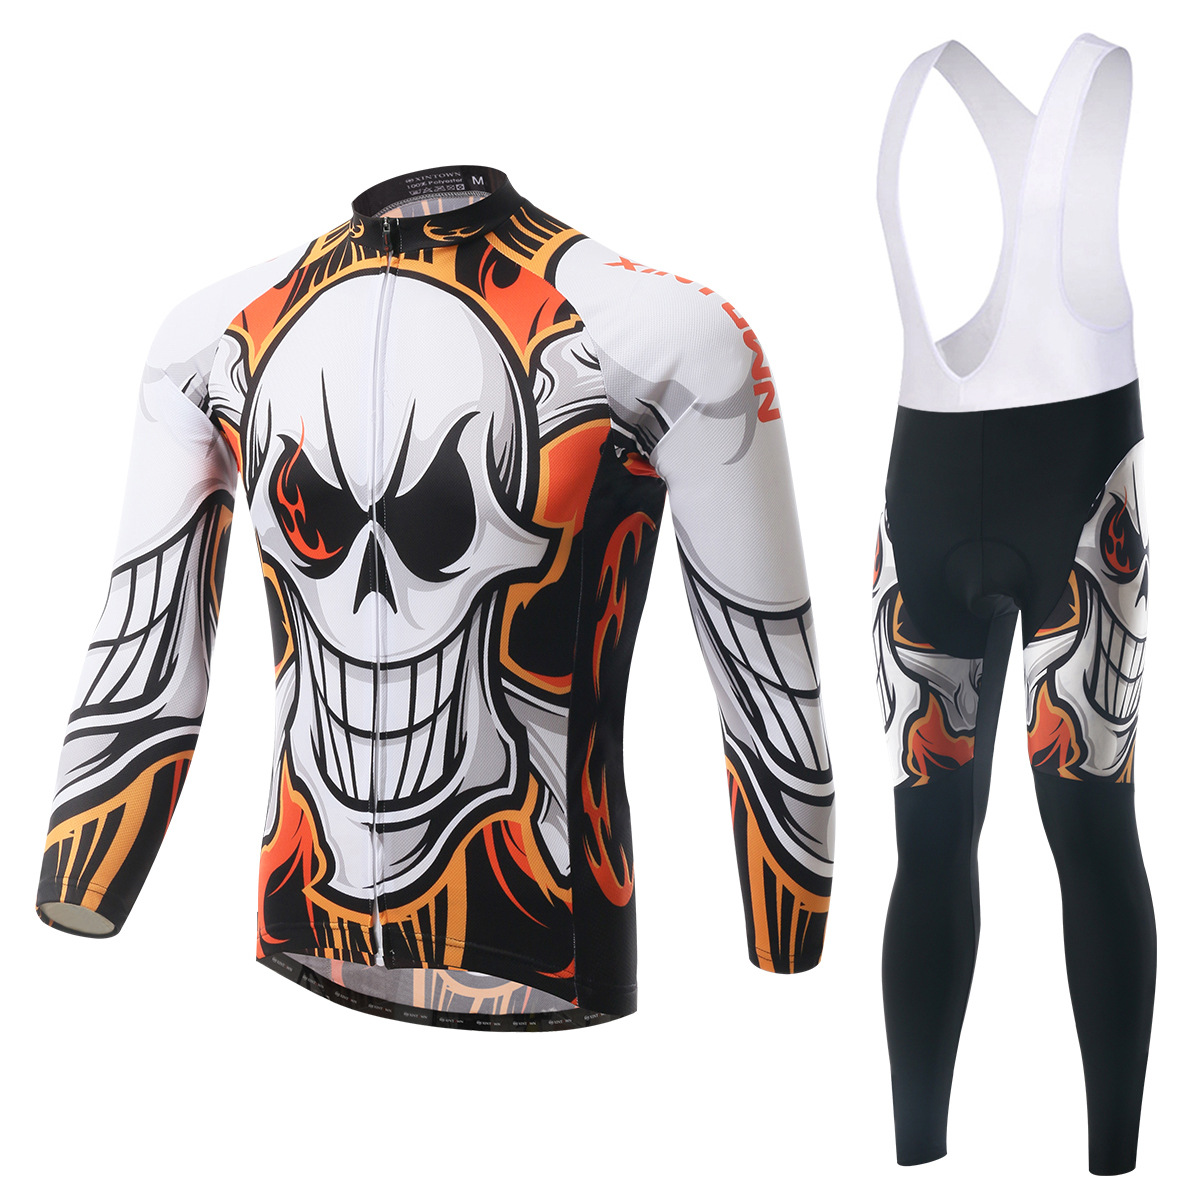 XINTOWN evil fire bike riding jersey gear strap long-sleeved suit wear bicycle suits fleece wind warm functional underwear